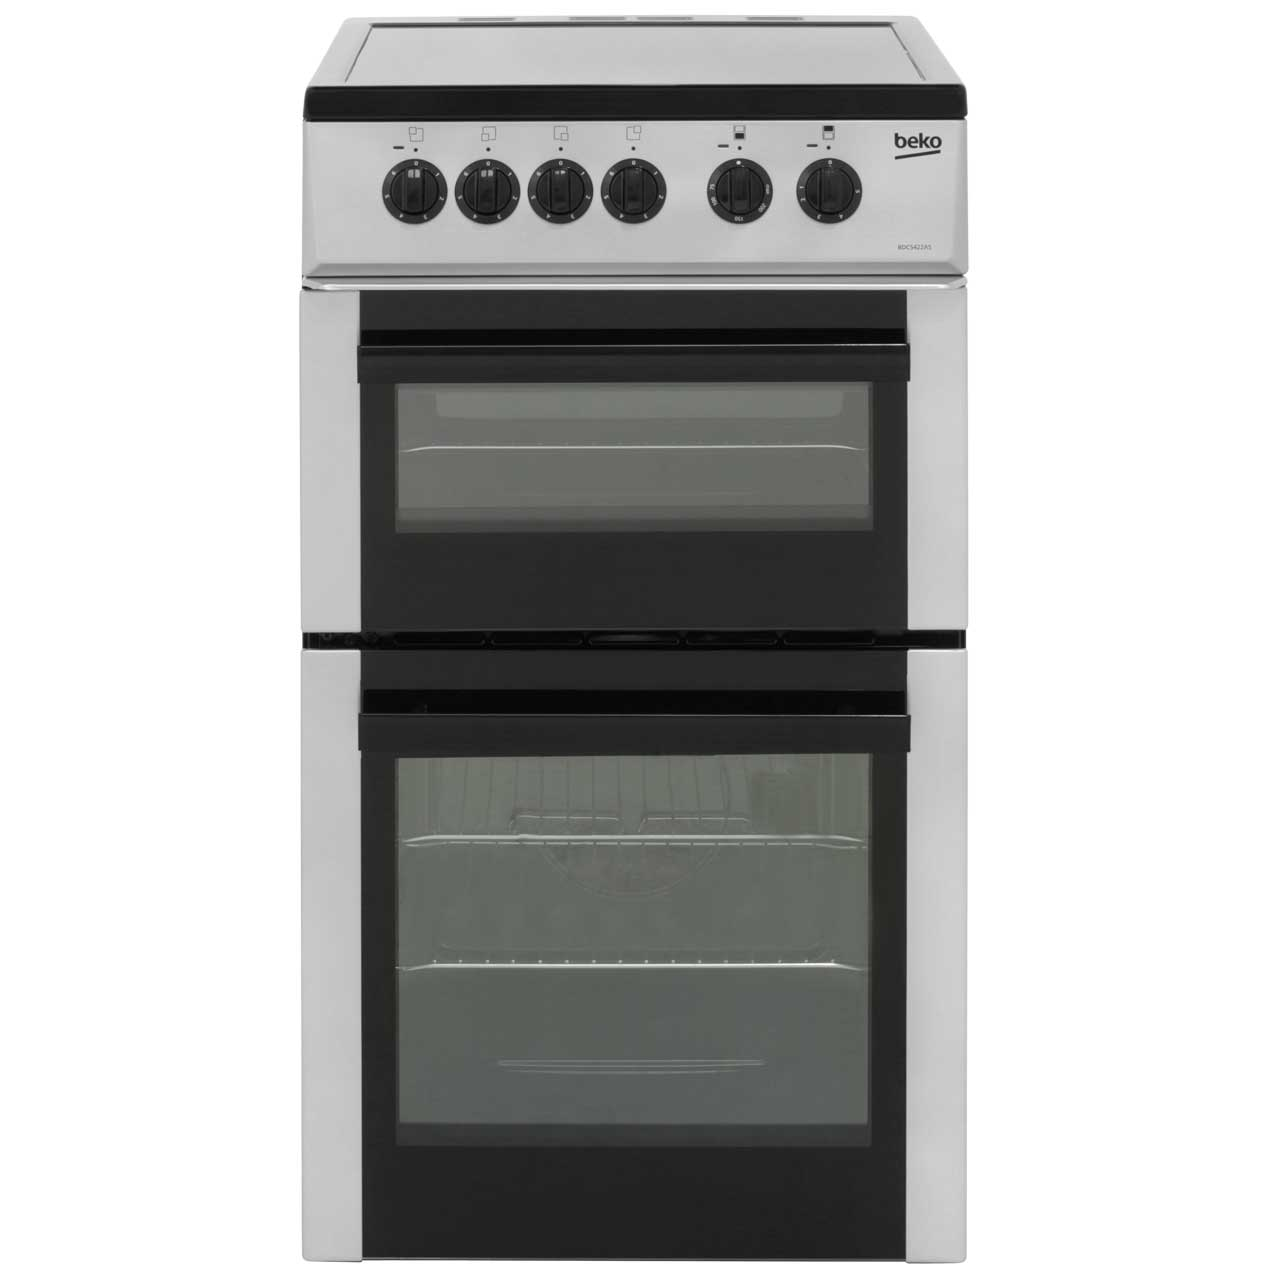 Beko BDC5422AS Free Standing Cooker in Silver